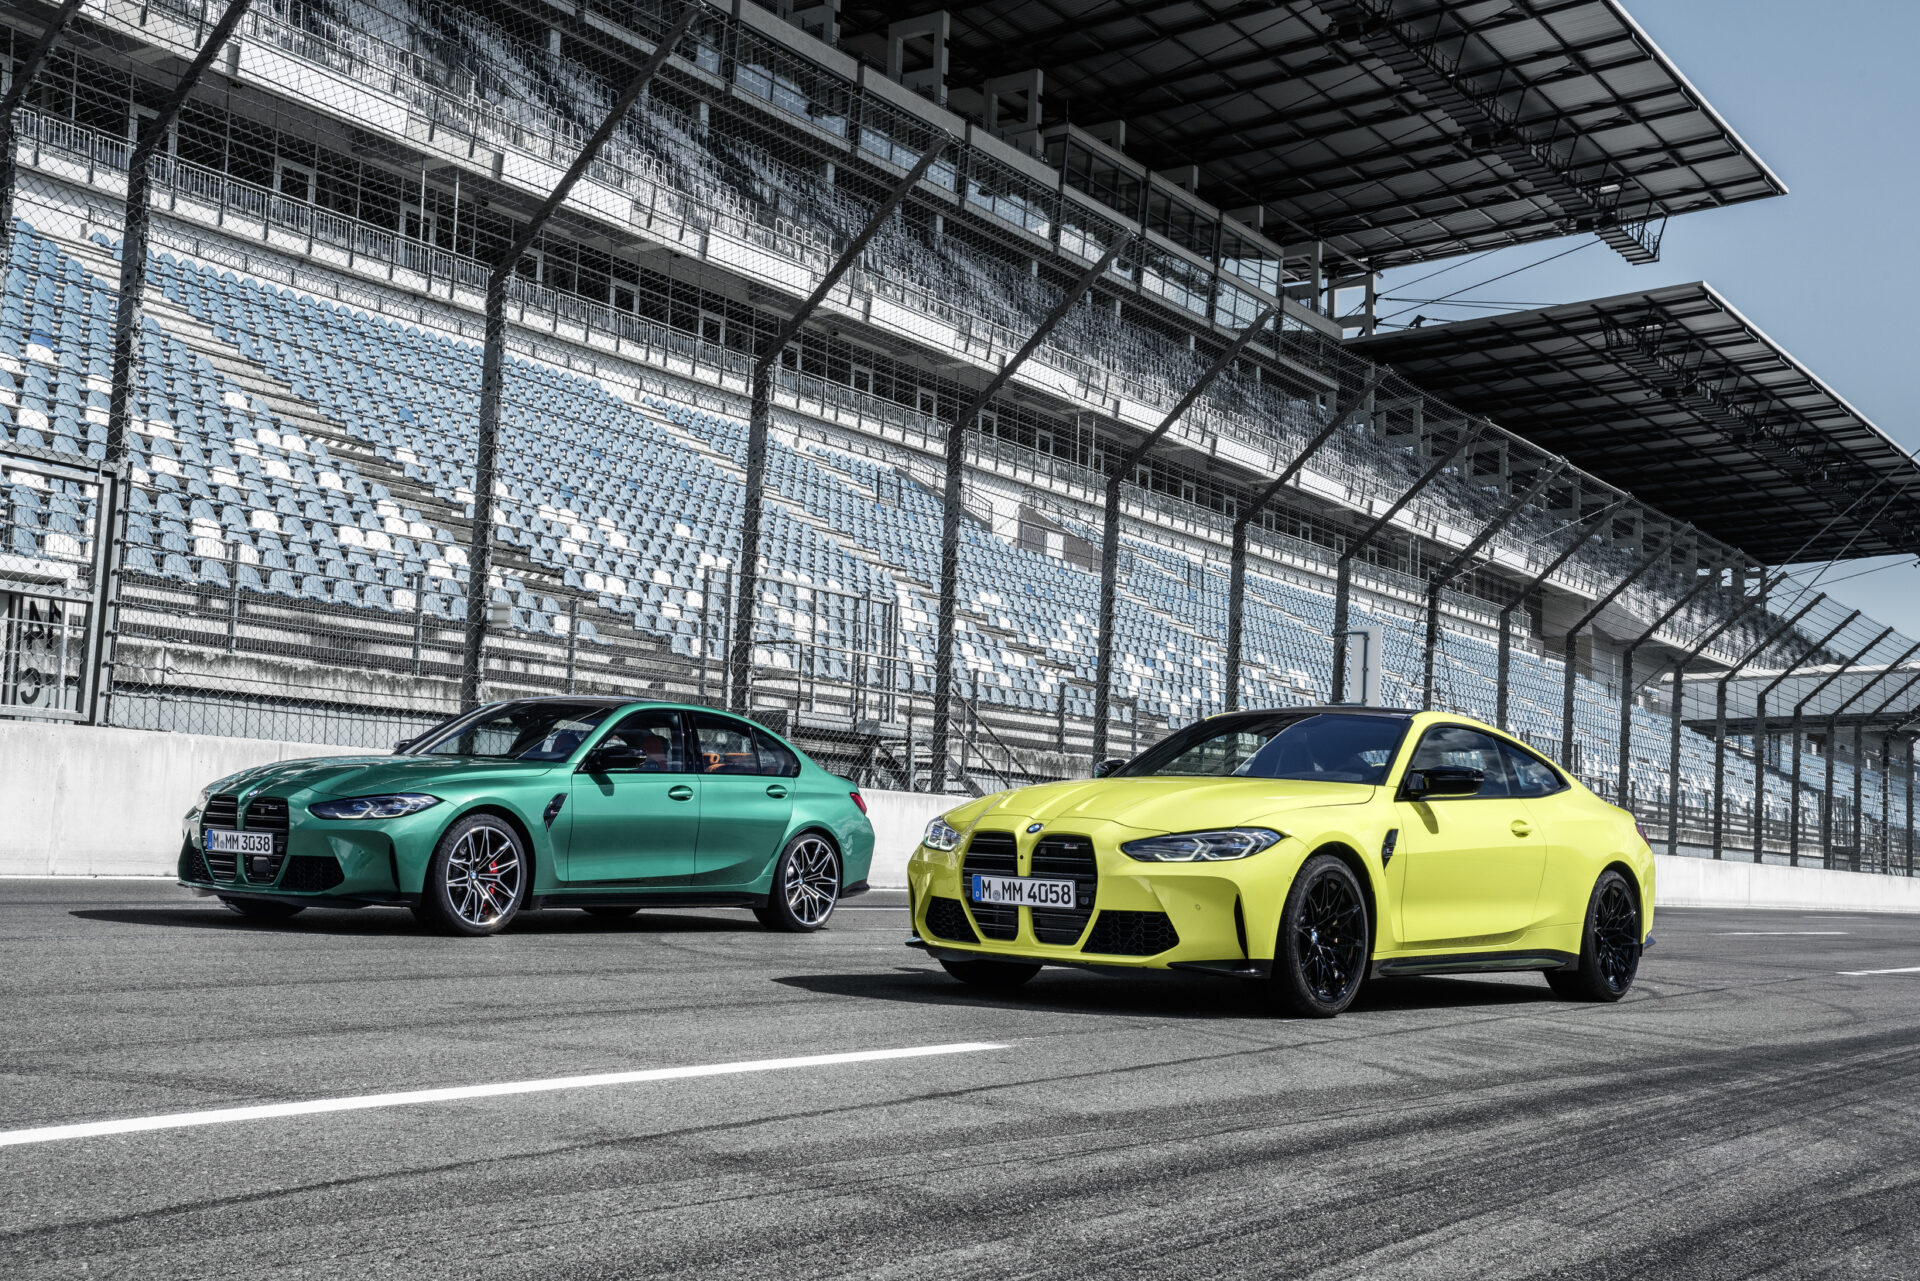 P90399285 highRes the new bmw m3 compe – New BMW M3 and M4 take a brave new direction